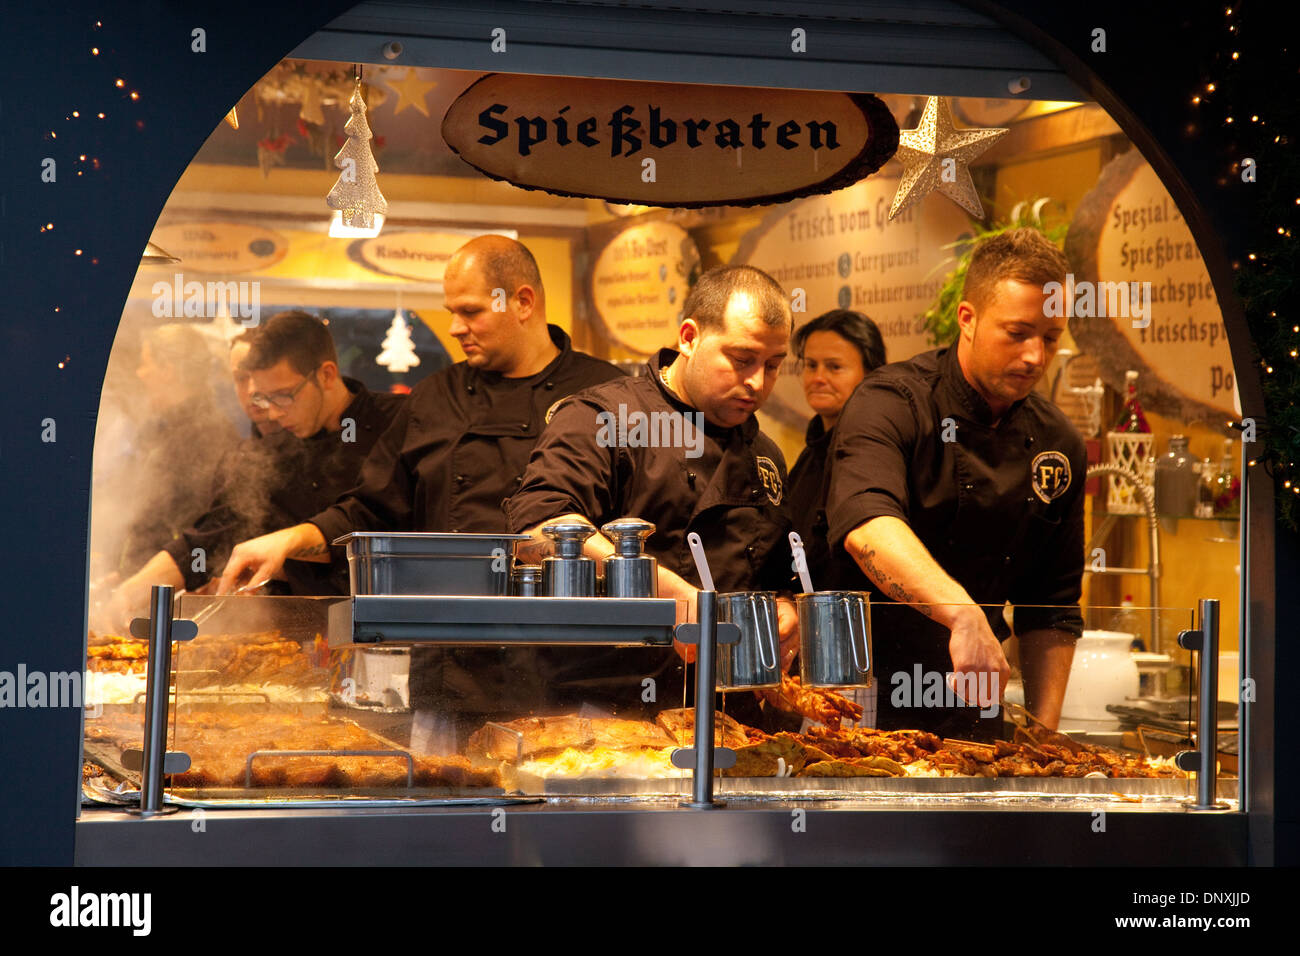 German  Christmas markets Spiessbraten ( Pork steaks) being cooked on a stall in the Cathedral Market, Cologne ( Koln ), Germany - Stock Image